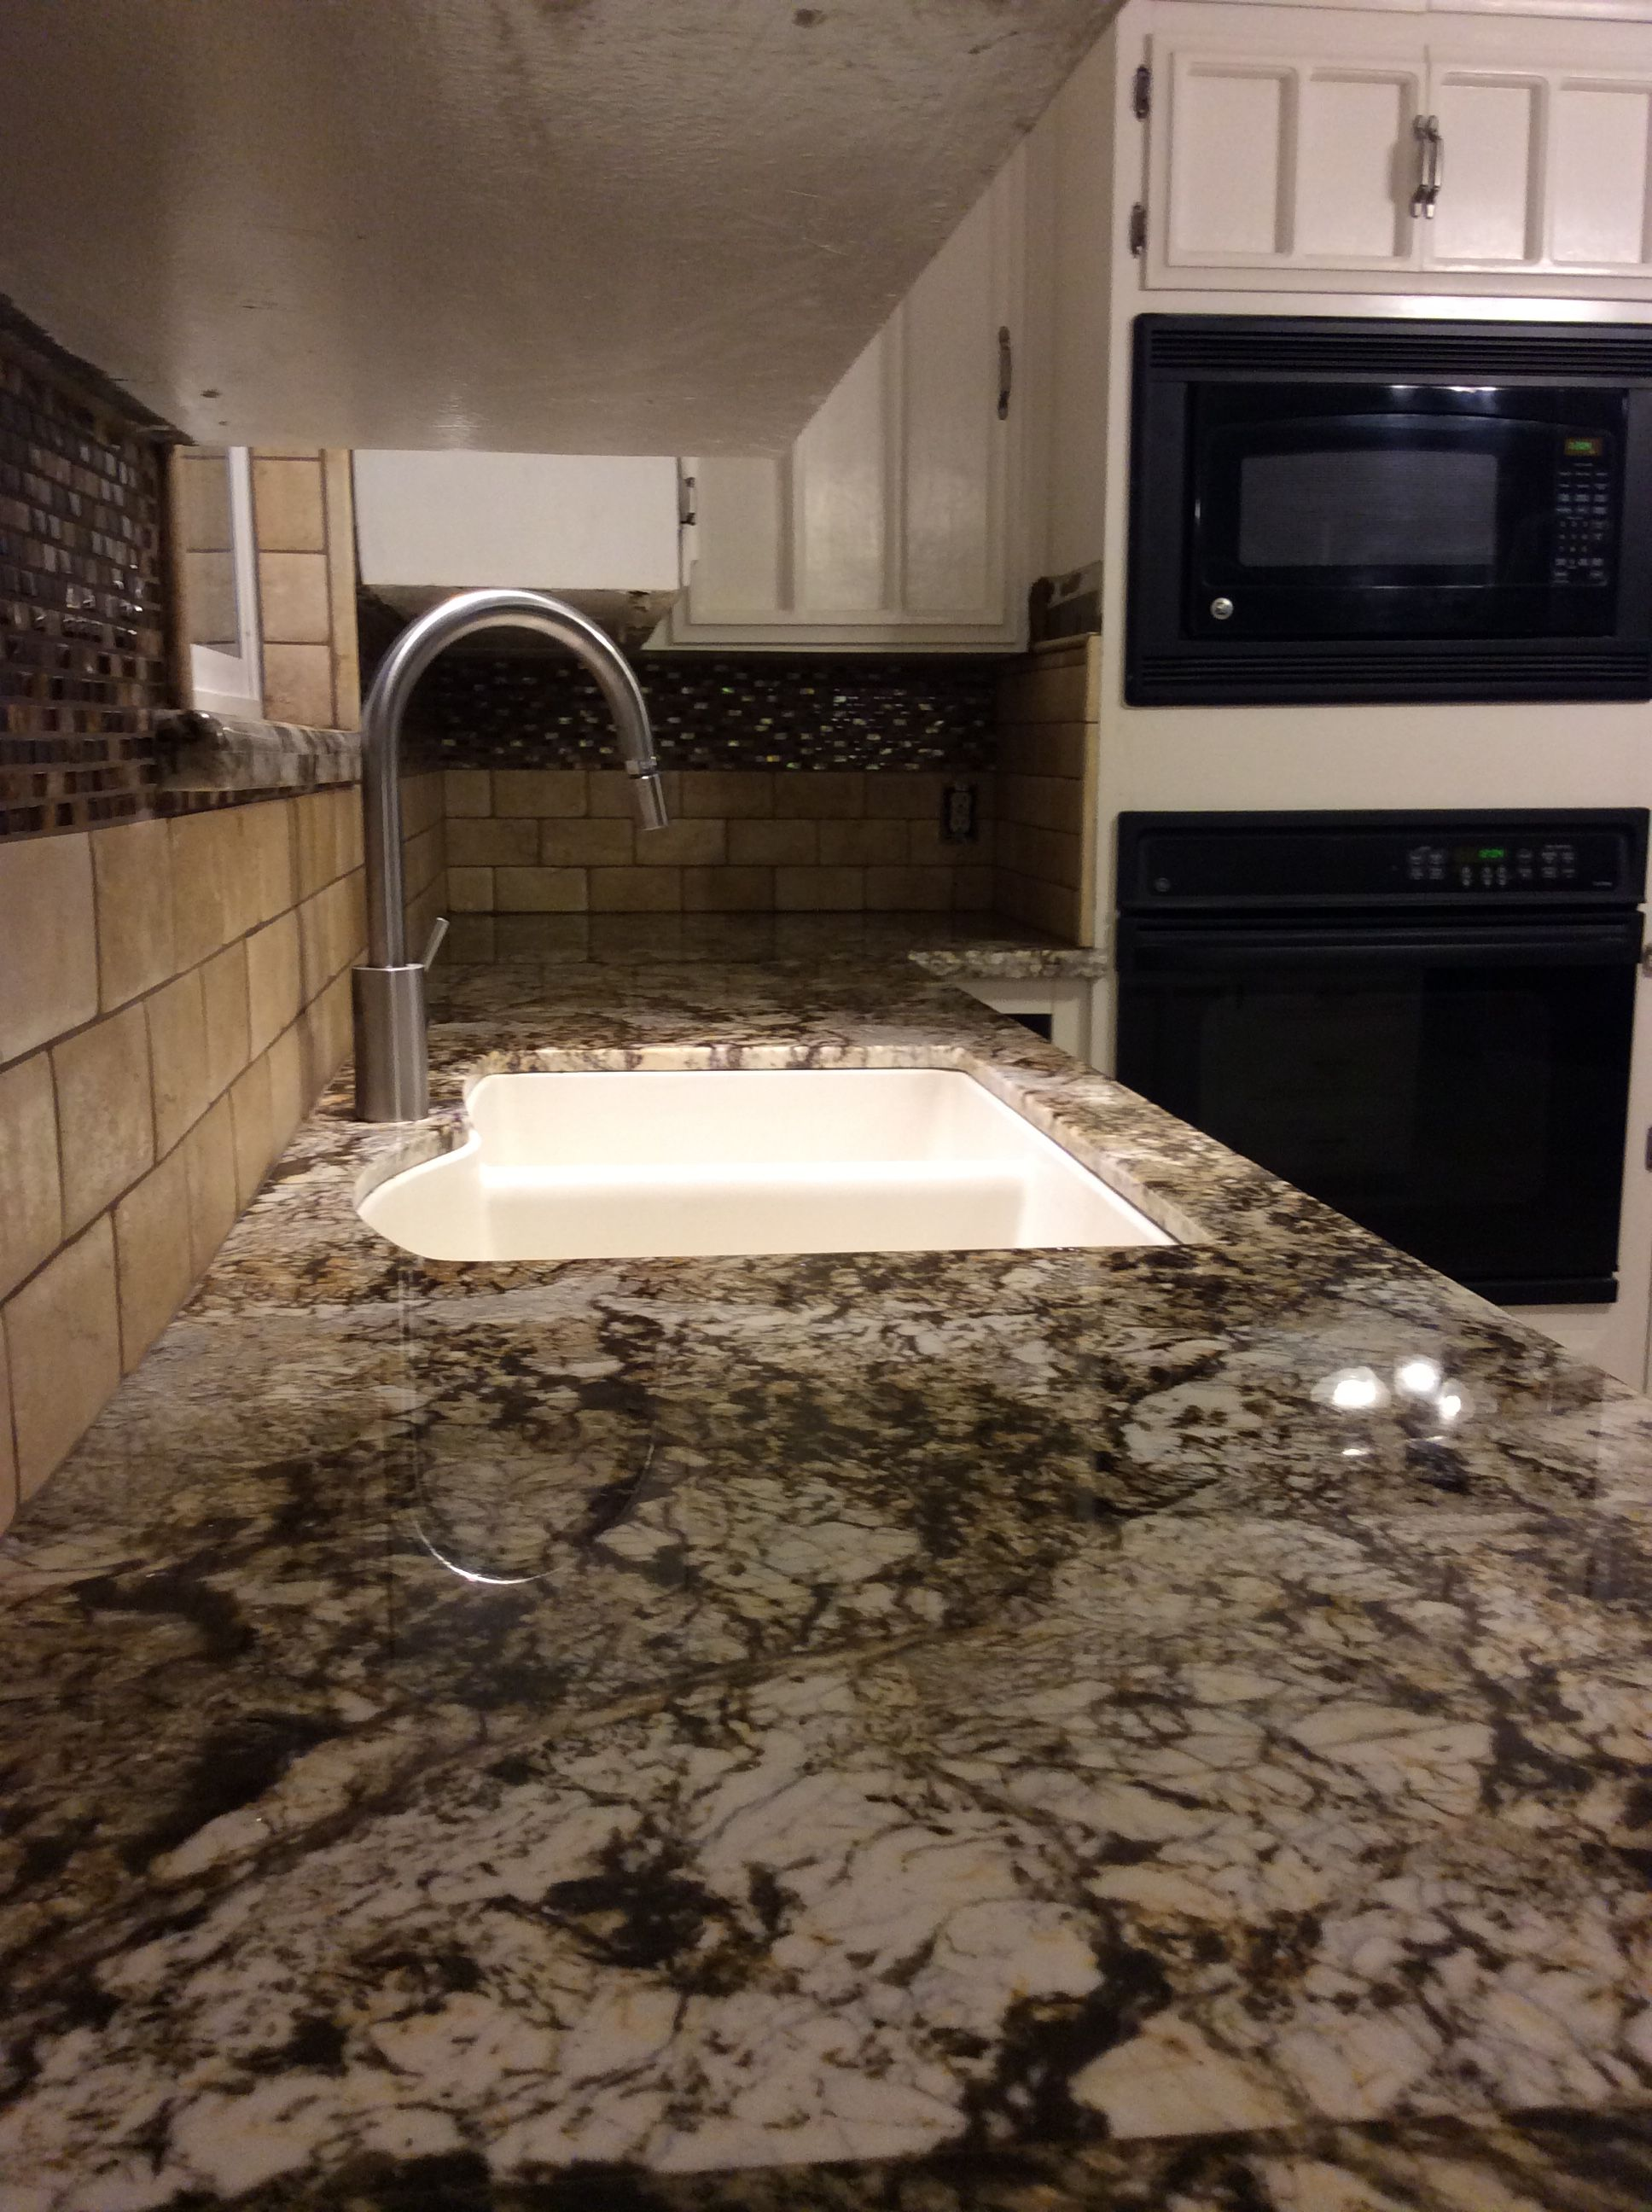 White apron chef fresno - Normandy Granite Countertops From Our Fresno Location Paired With A Limestone Backsplash